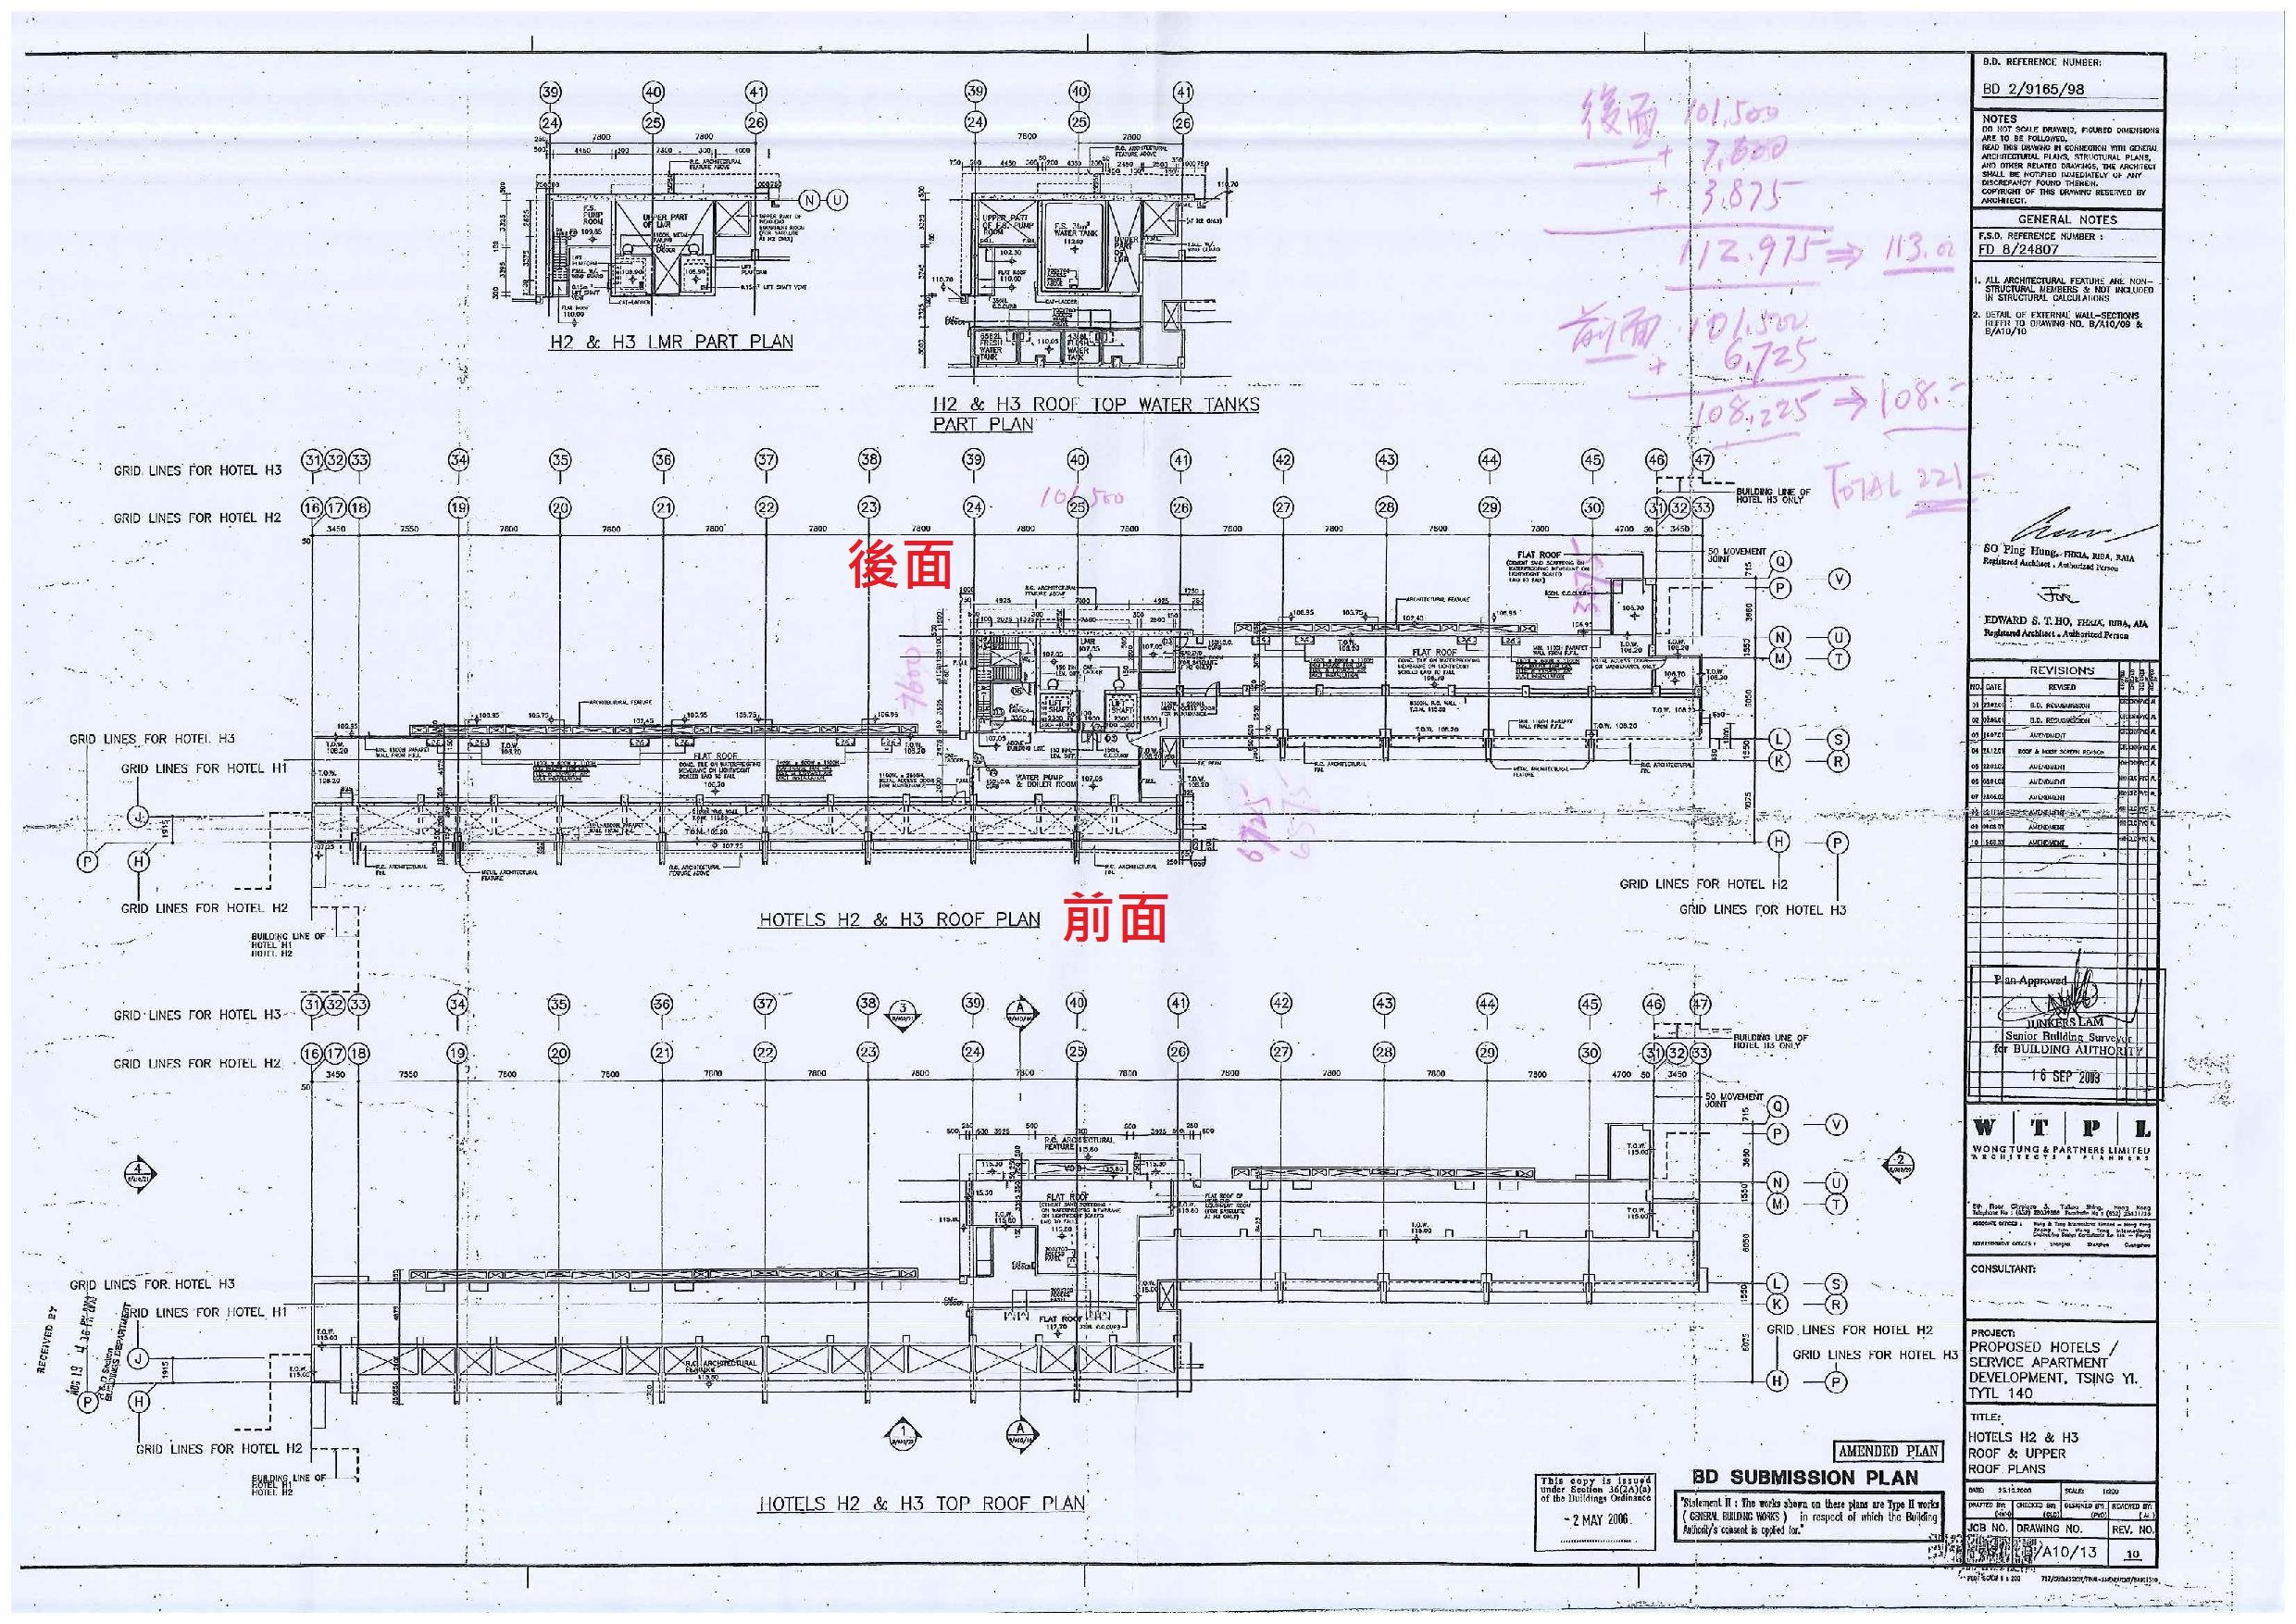 bid_deco_floorplan_1450430969.jpg